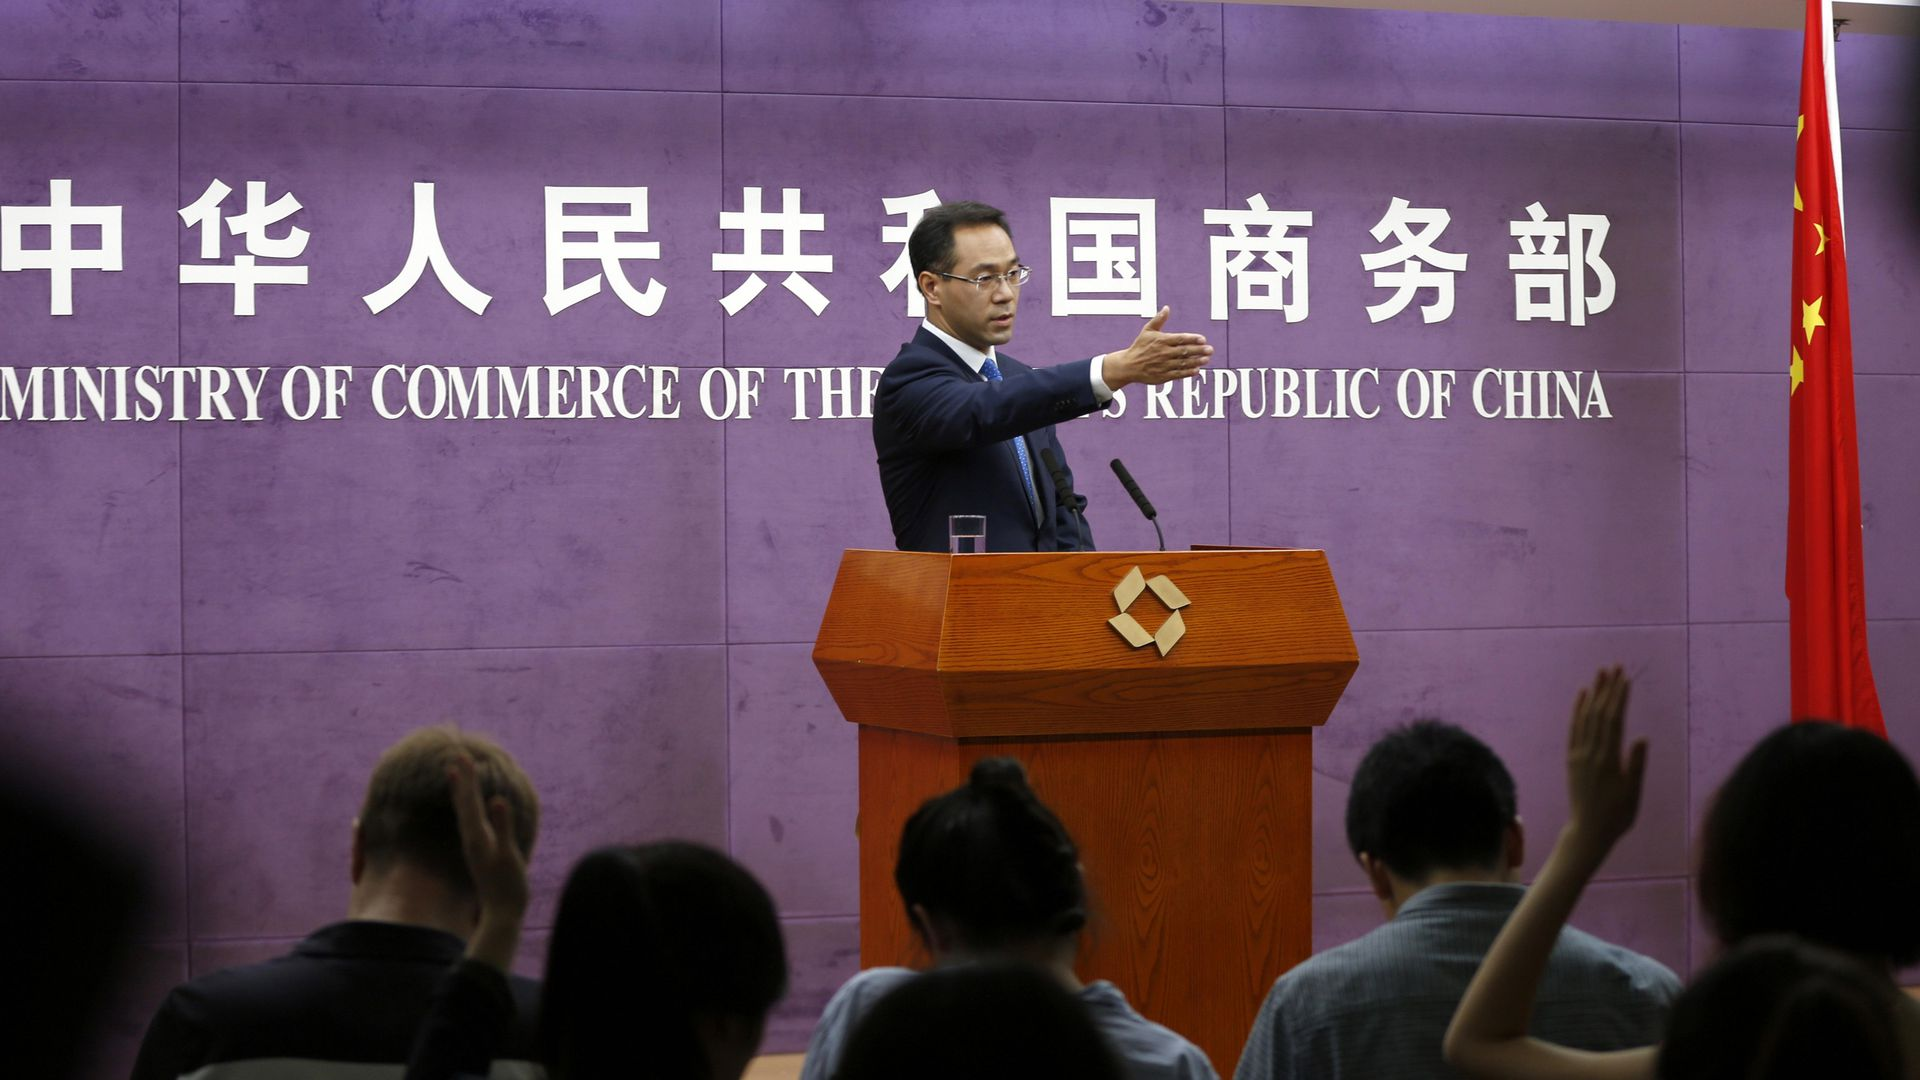 China commerce ministry spokesman at a press conference